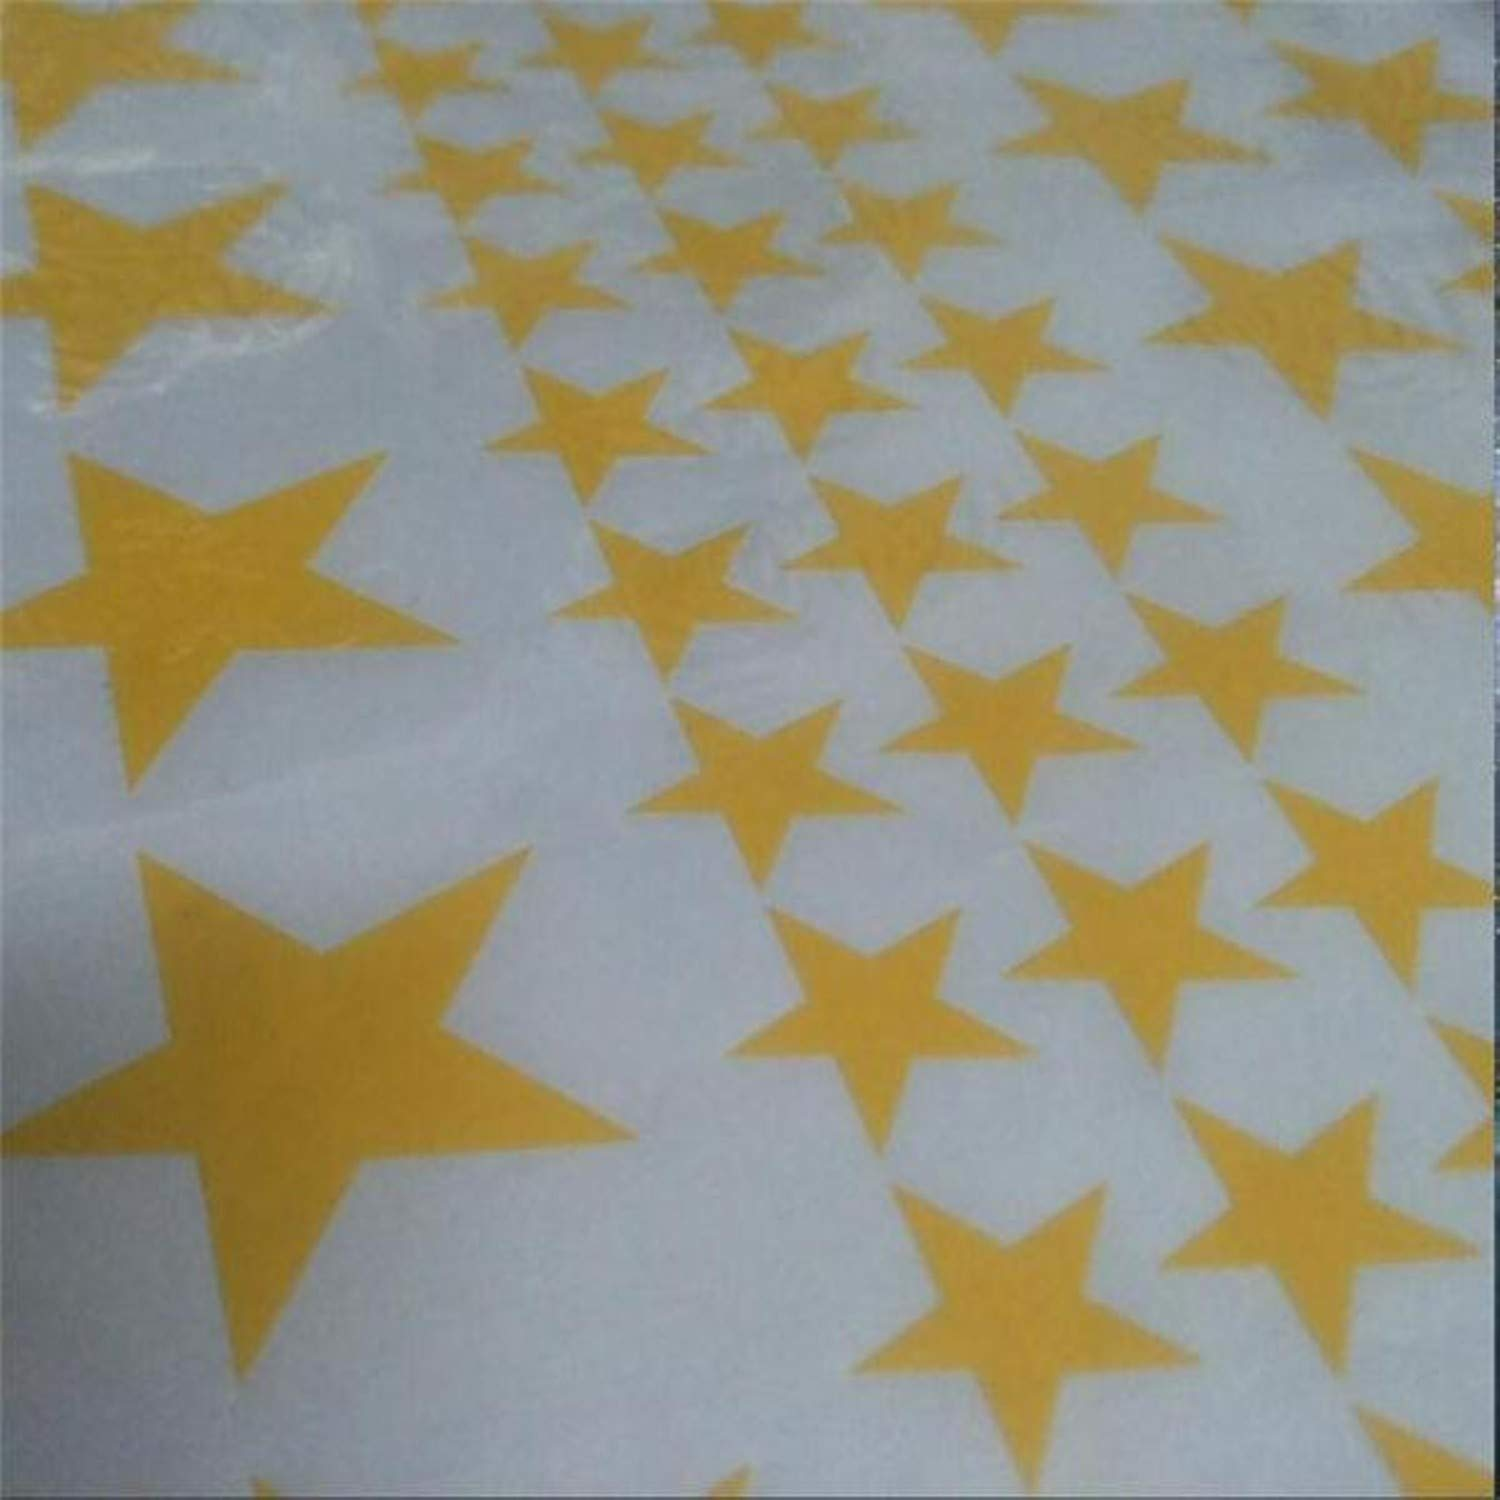 Amazon.com: Chitop New Cartoon Starry Wall Stickers for Kids Rooms - Home Decor Little Stars Wall Decals - Baby Nursery DIY Vinyl Art Mural (Yellow): Home & ...